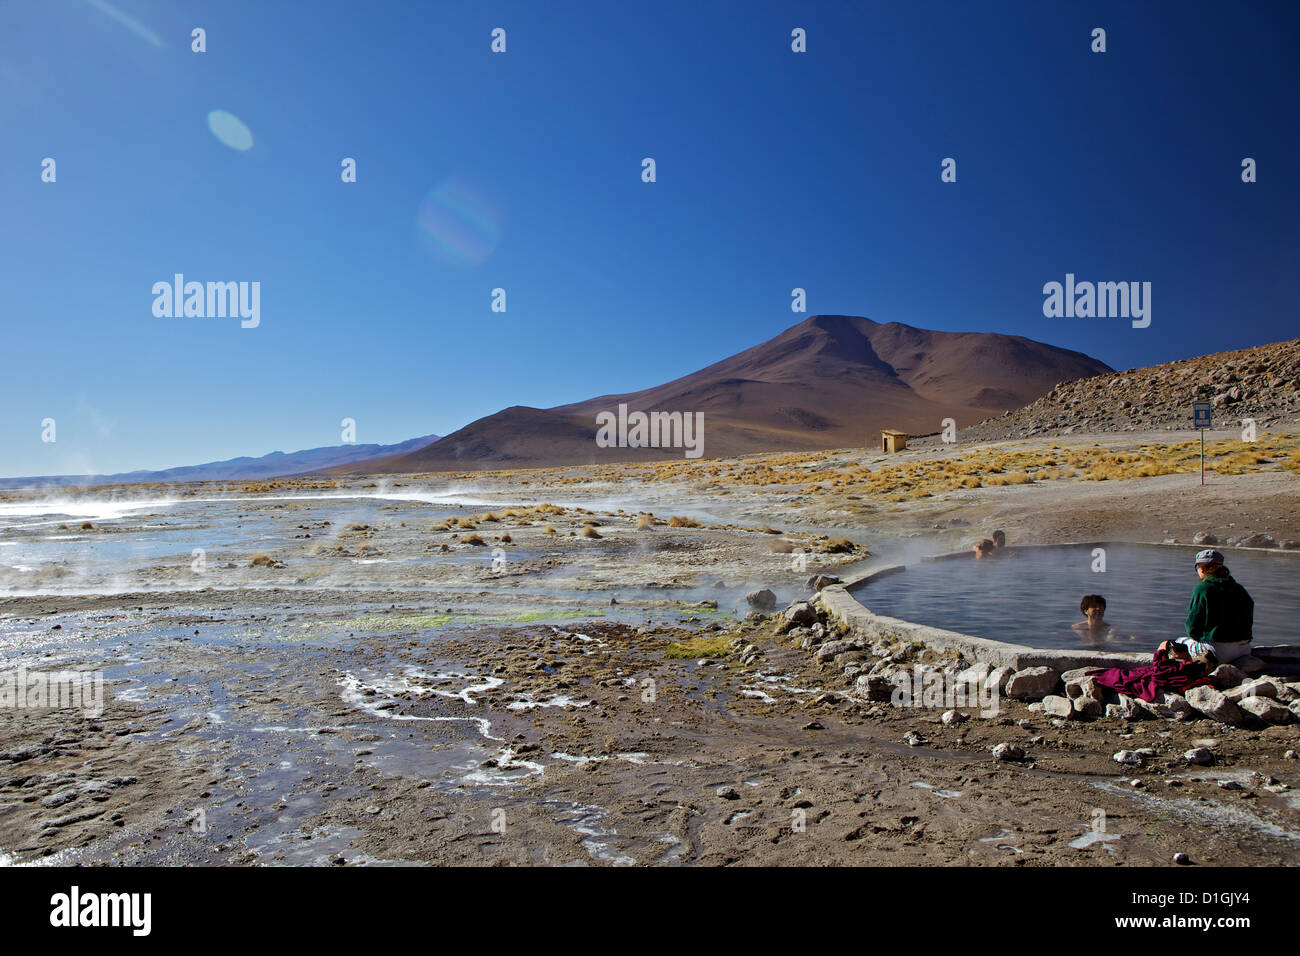 Hot springs and mud pools, Aguas Calientes, Southwest Highlands, Bolivia, South America Stock Photo